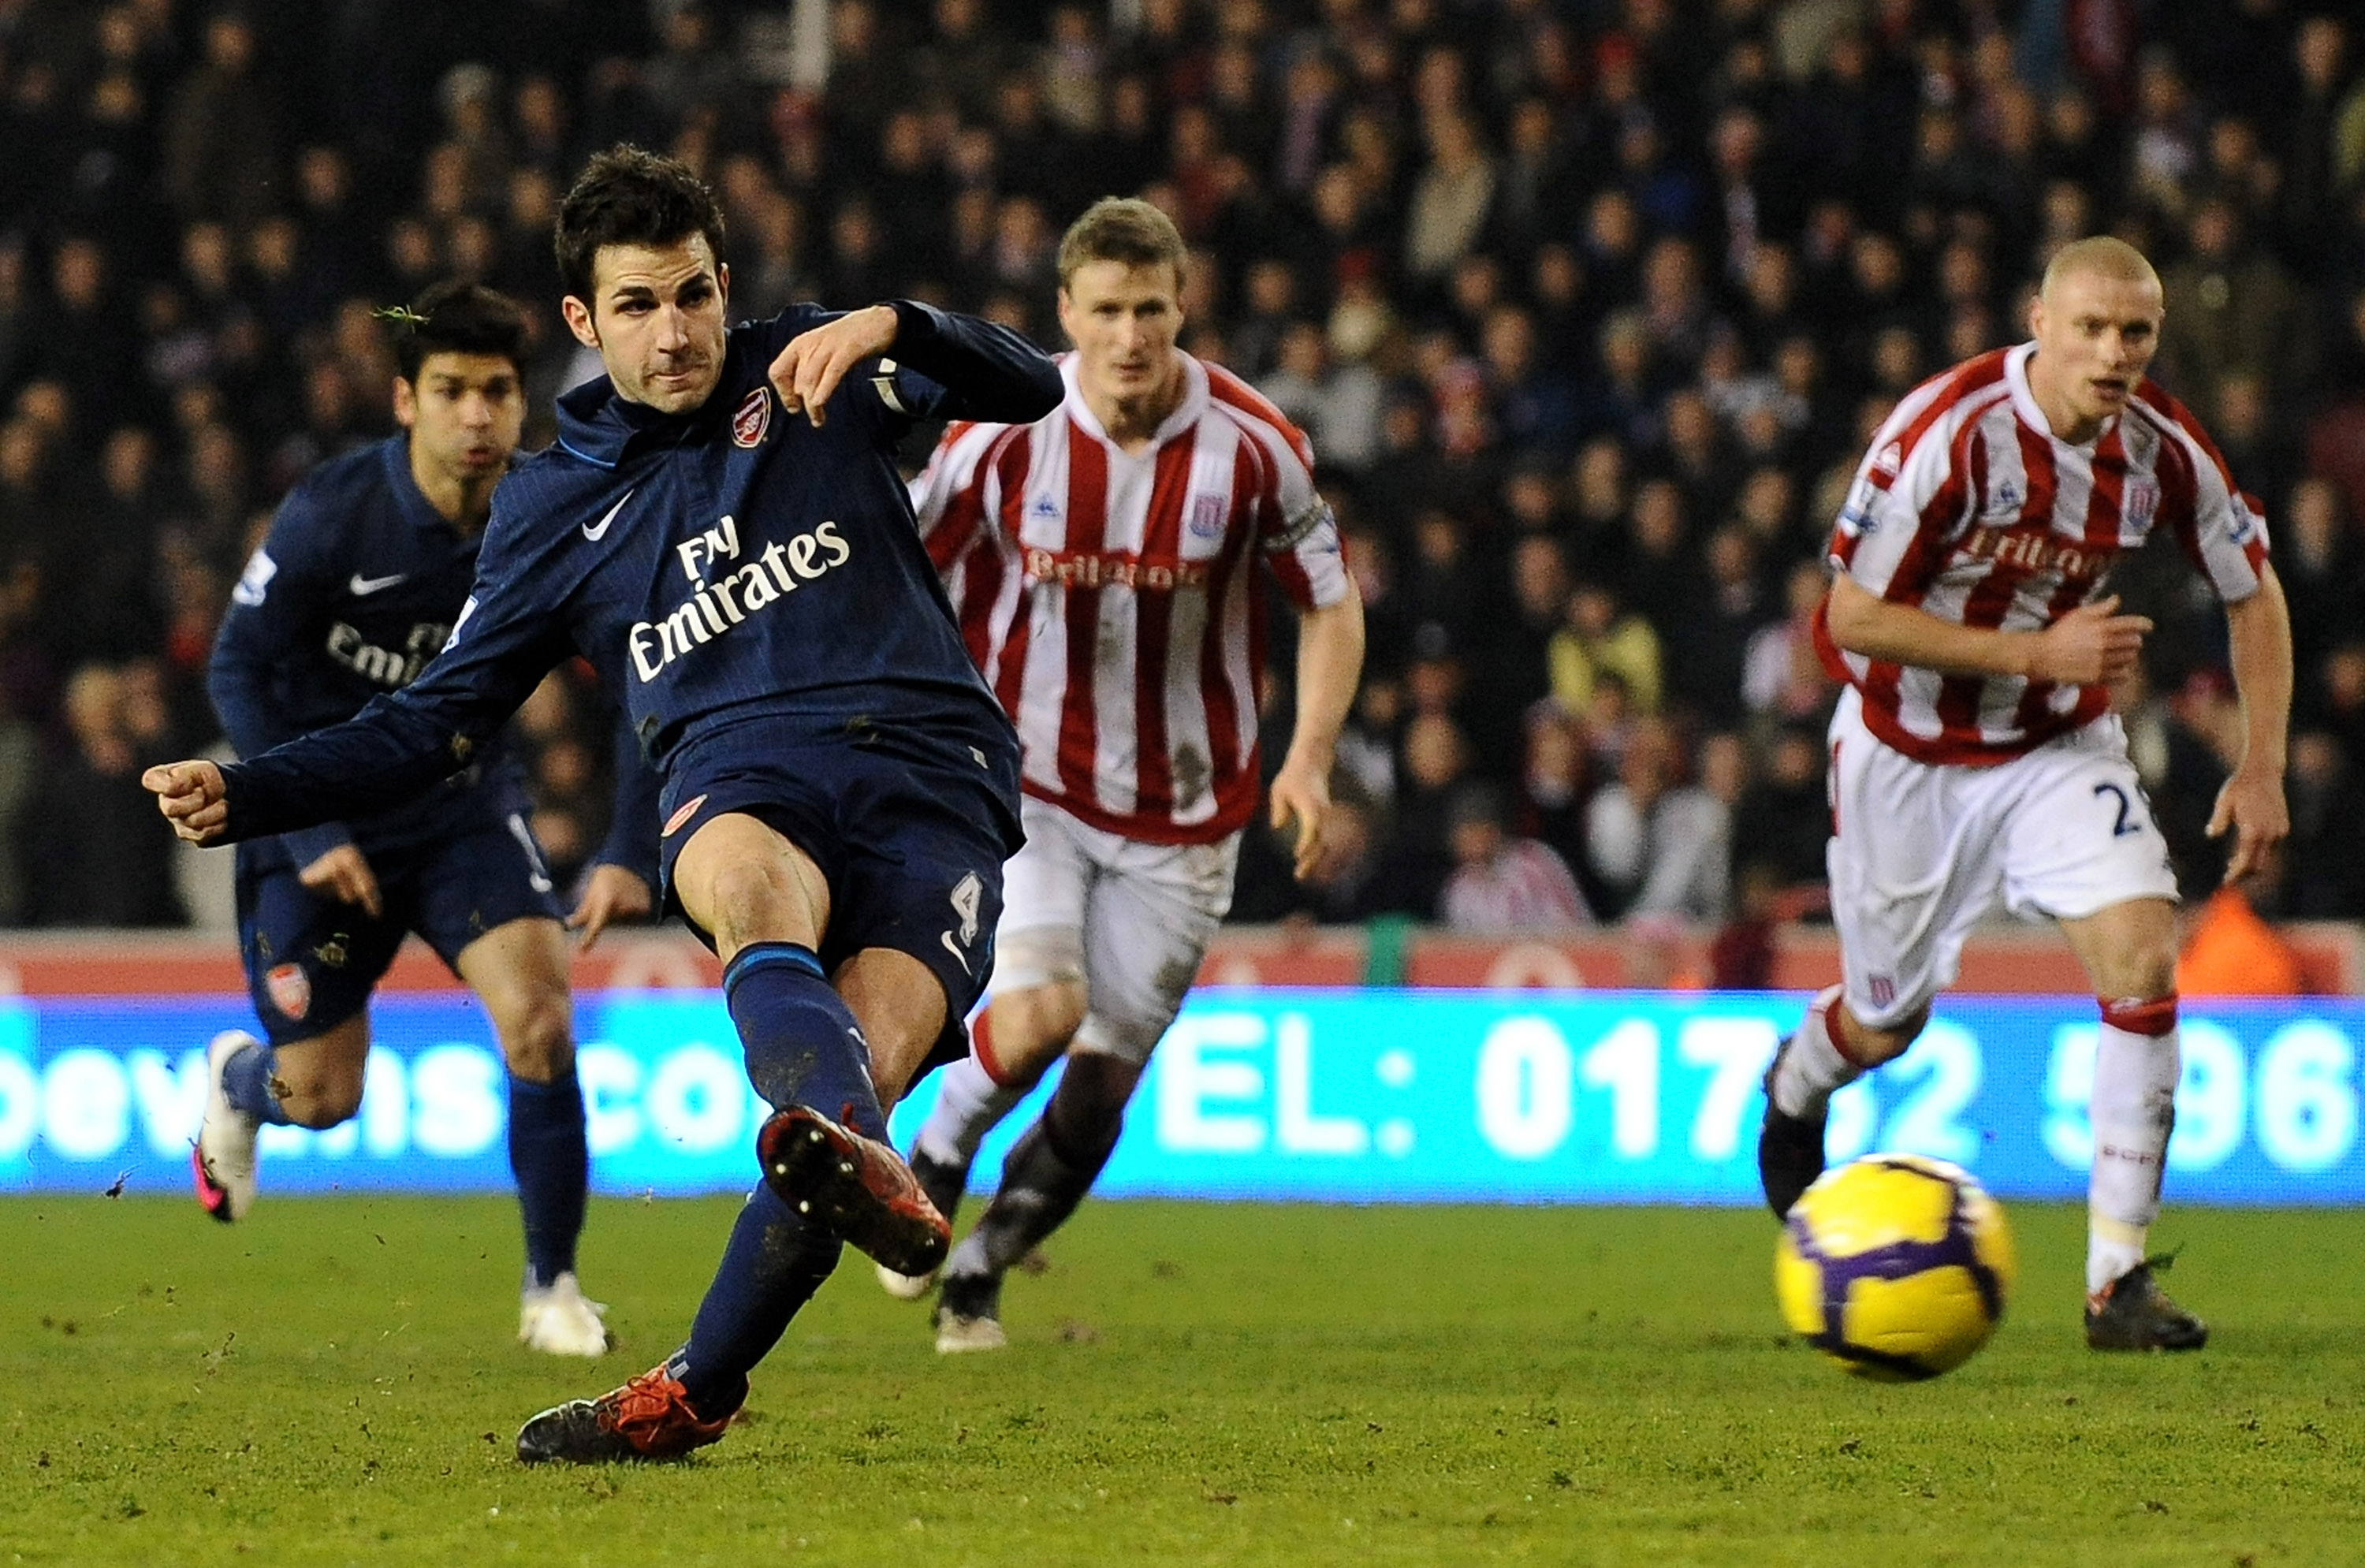 STOKE ON TRENT, ENGLAND - FEBRUARY 27:   Cesc Fabregas of Arsenal scores his team's second goal from the penalty spot during the Barclays Premier League match between Stoke City and Arsenal at The Britannia Stadium on February 27, 2010 in Stoke on Trent,